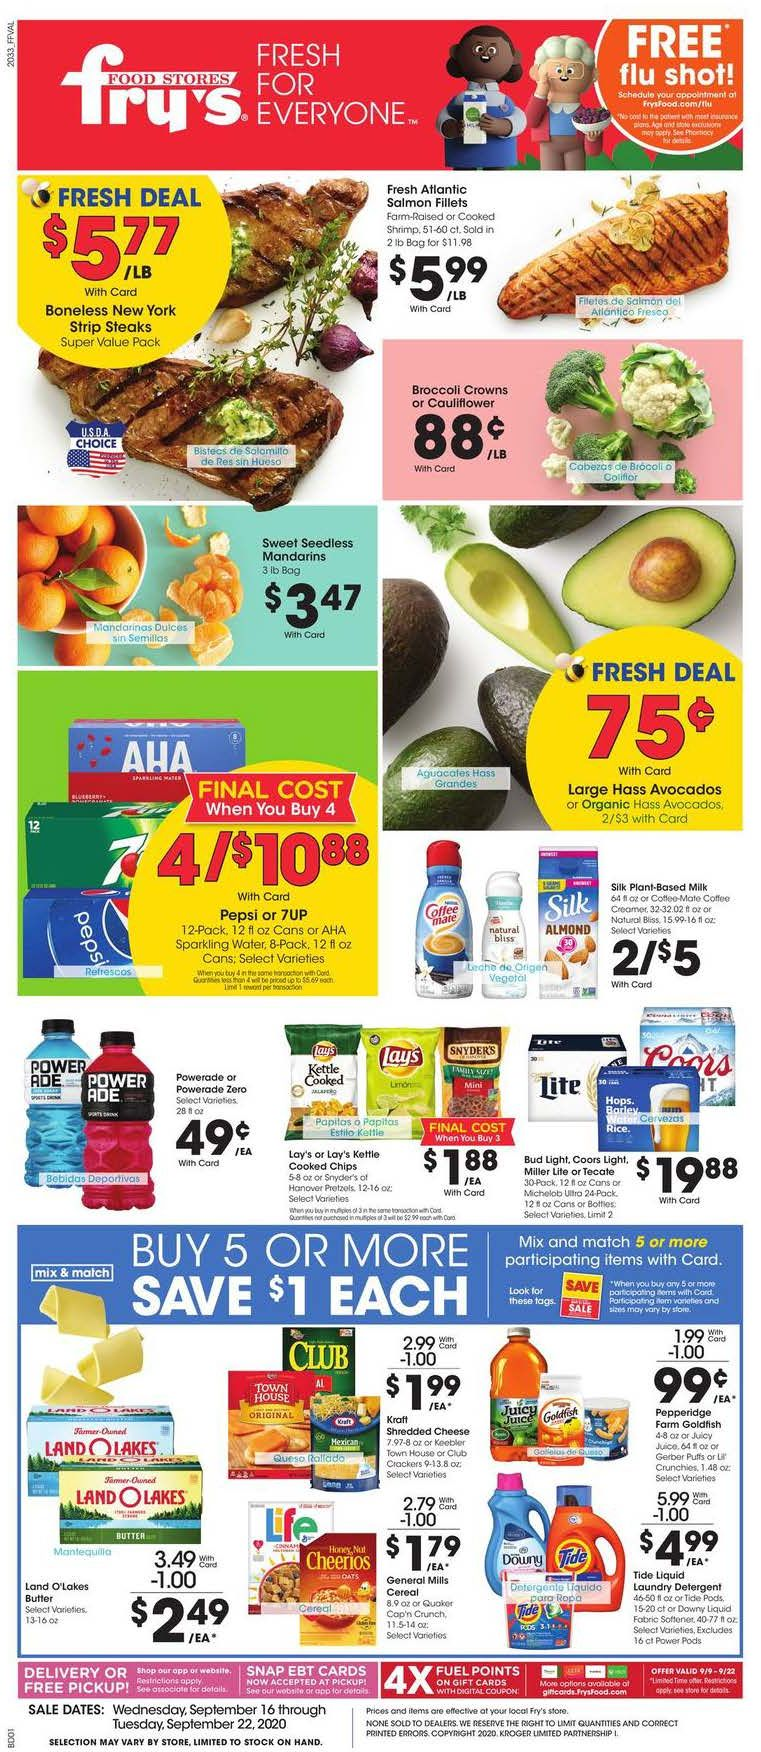 frys weekly september ad valid from sep 16 sep 22 2020